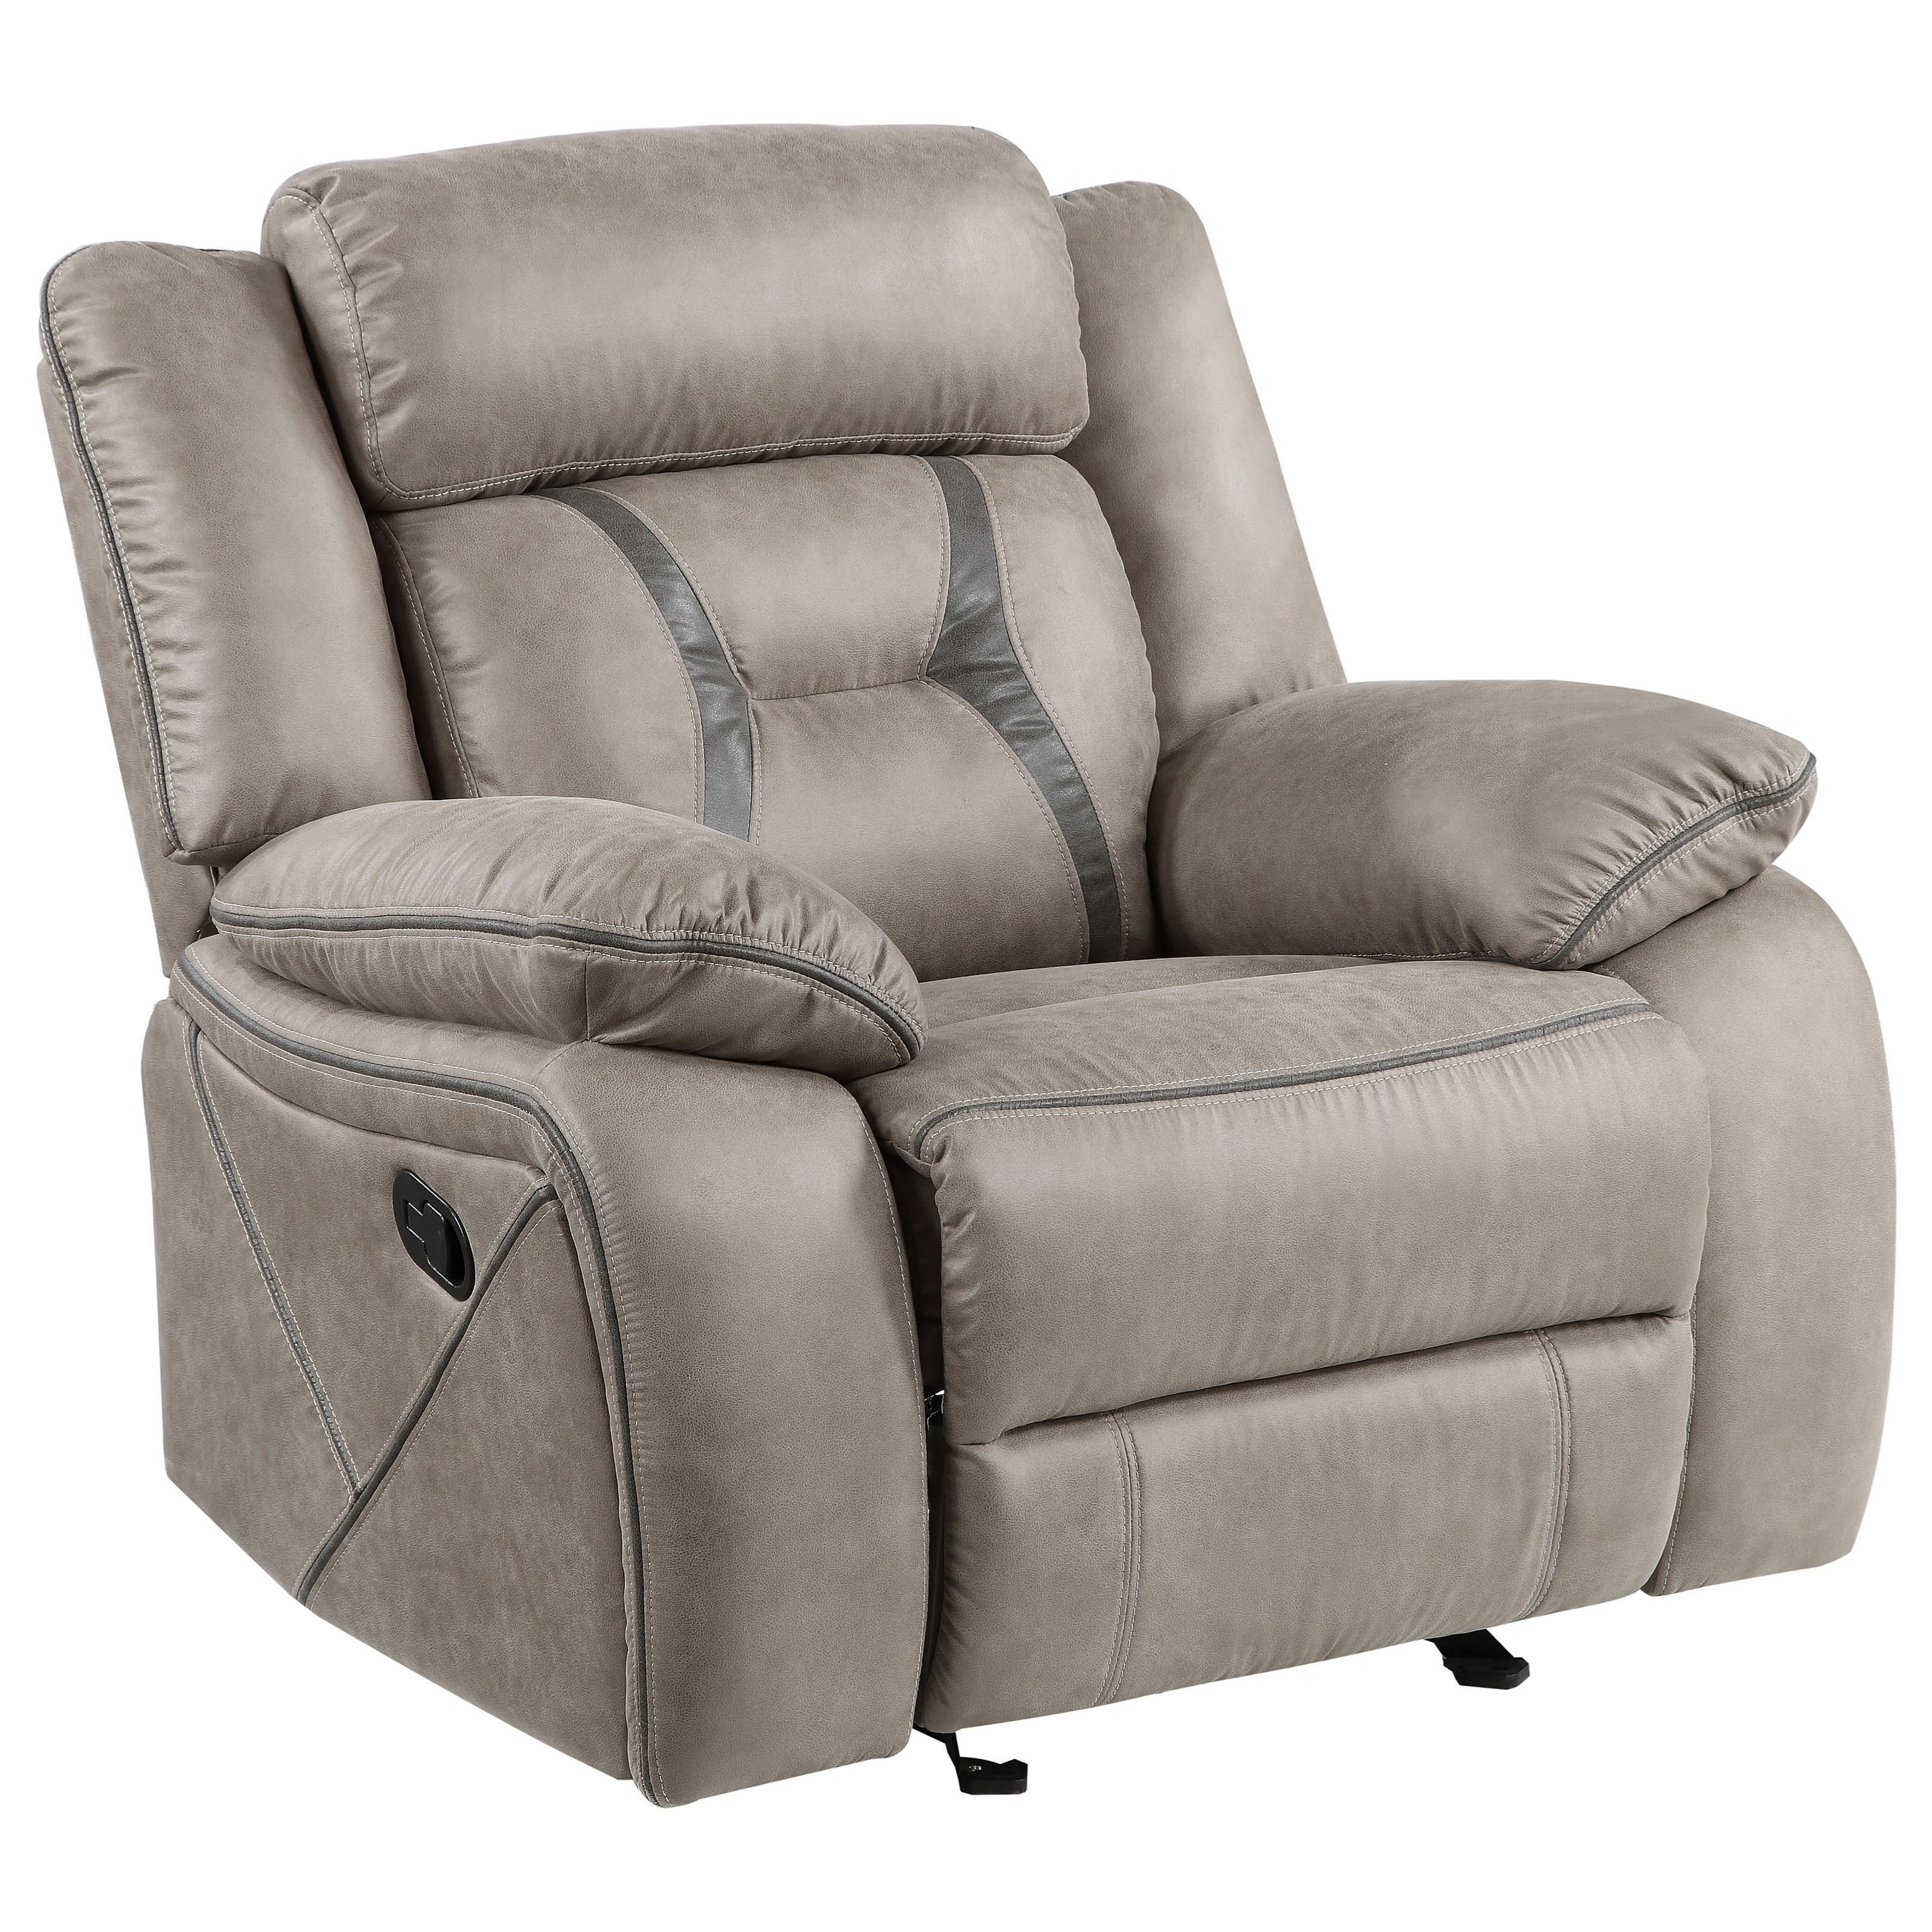 Star Tyson Ty850r Casual Manual Glider Recliner Efo Furniture Outlet Recliners